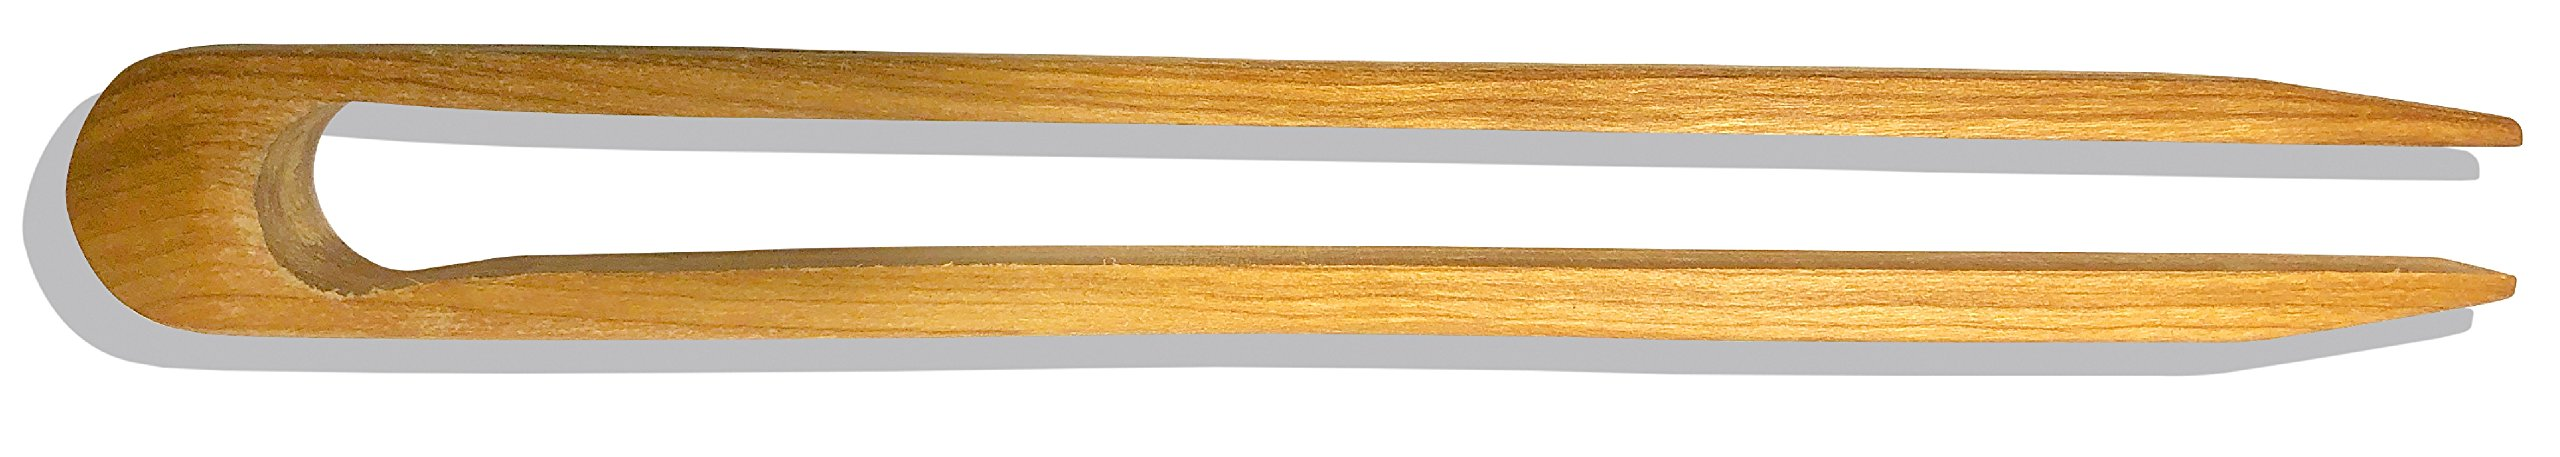 Premium Cherry Wood Toaster Tongs | Wooden Kitchen Tongs & Great Hand Made Gift | Food Safe by Michigan Wooden Spoon